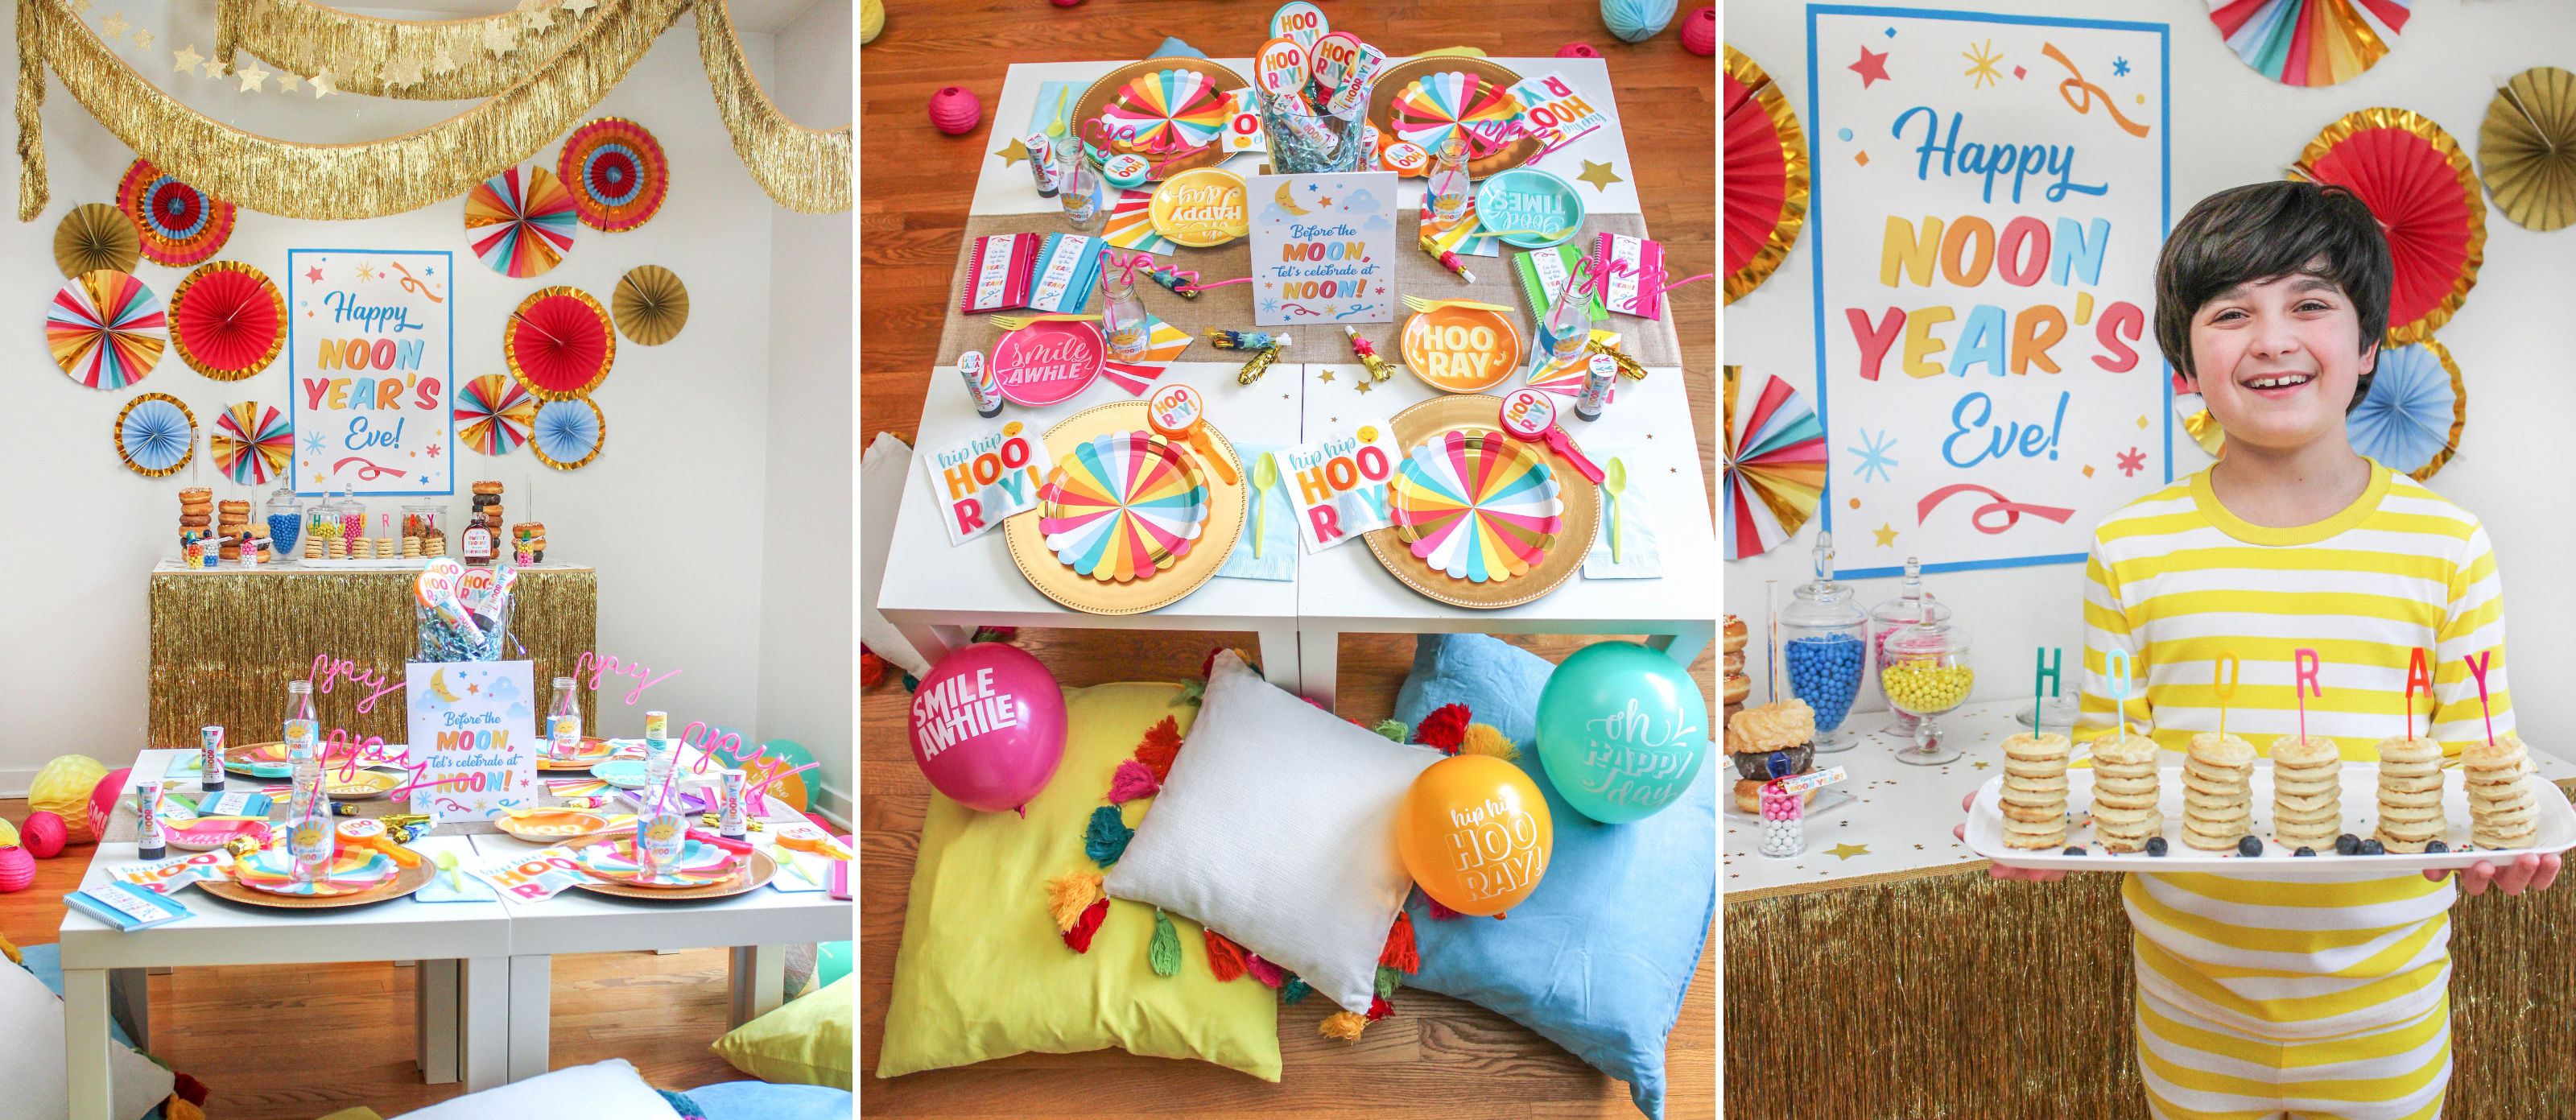 Noon Year's Eve Party, Kids' Noon Year's Eve Party, kids party, noon year, New Year's Eve, before the moon, celebrate at noon, ring in the noon year, ring in the new year, party printables, Just Add Confetti, at-home party, at-home celebration, pajama party, brunch, breakfast, new years eve, new years, new year